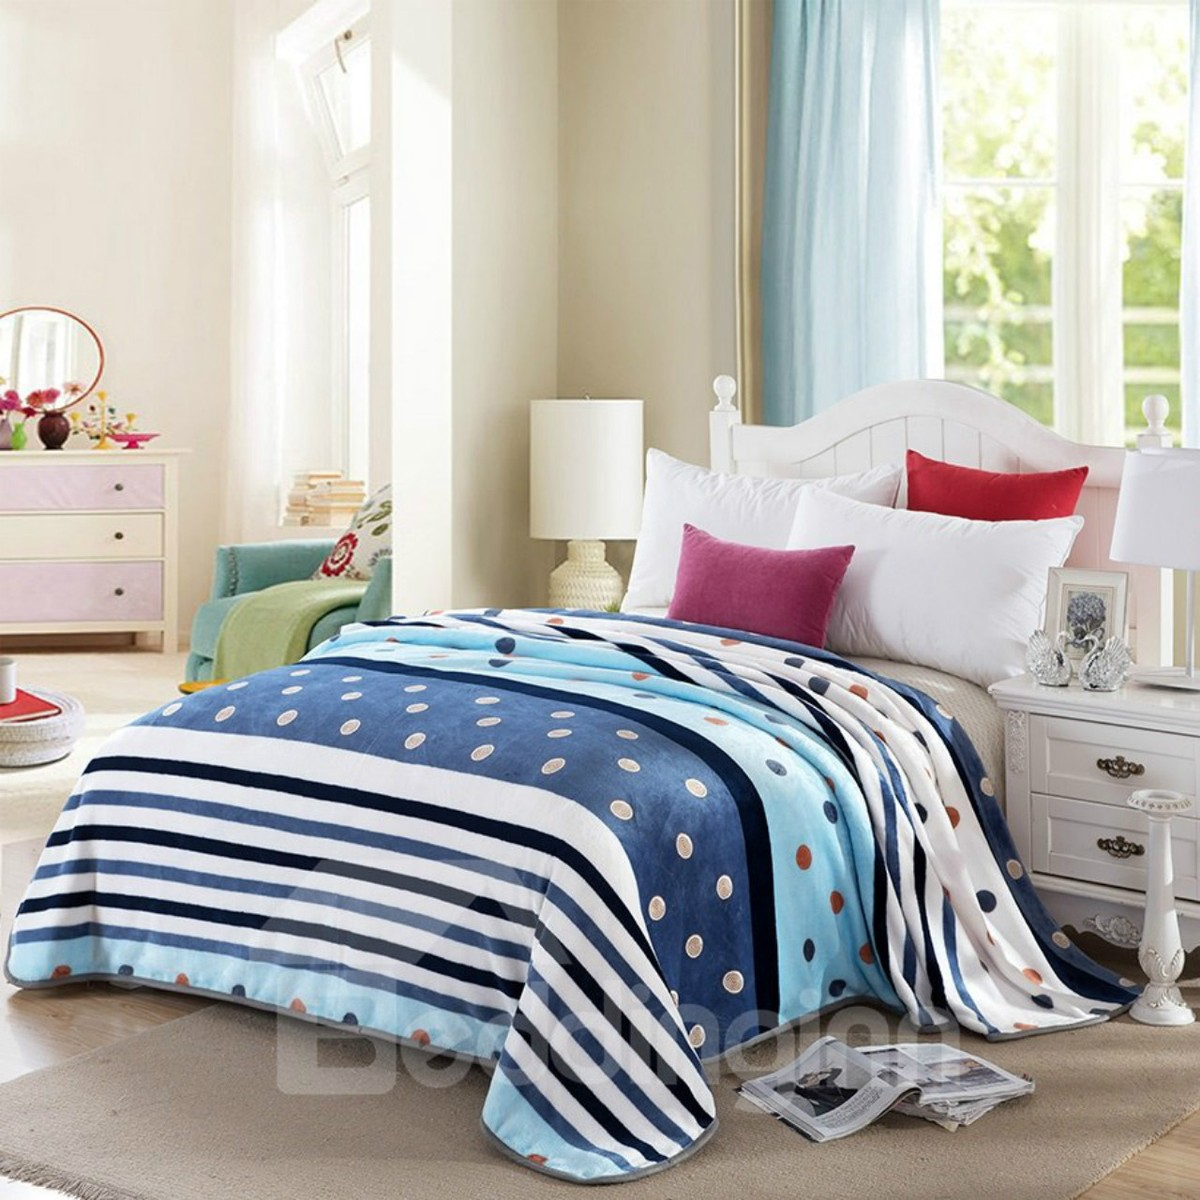 Dots and Stripe Design Flannel Warm Cosy Bed Blanket